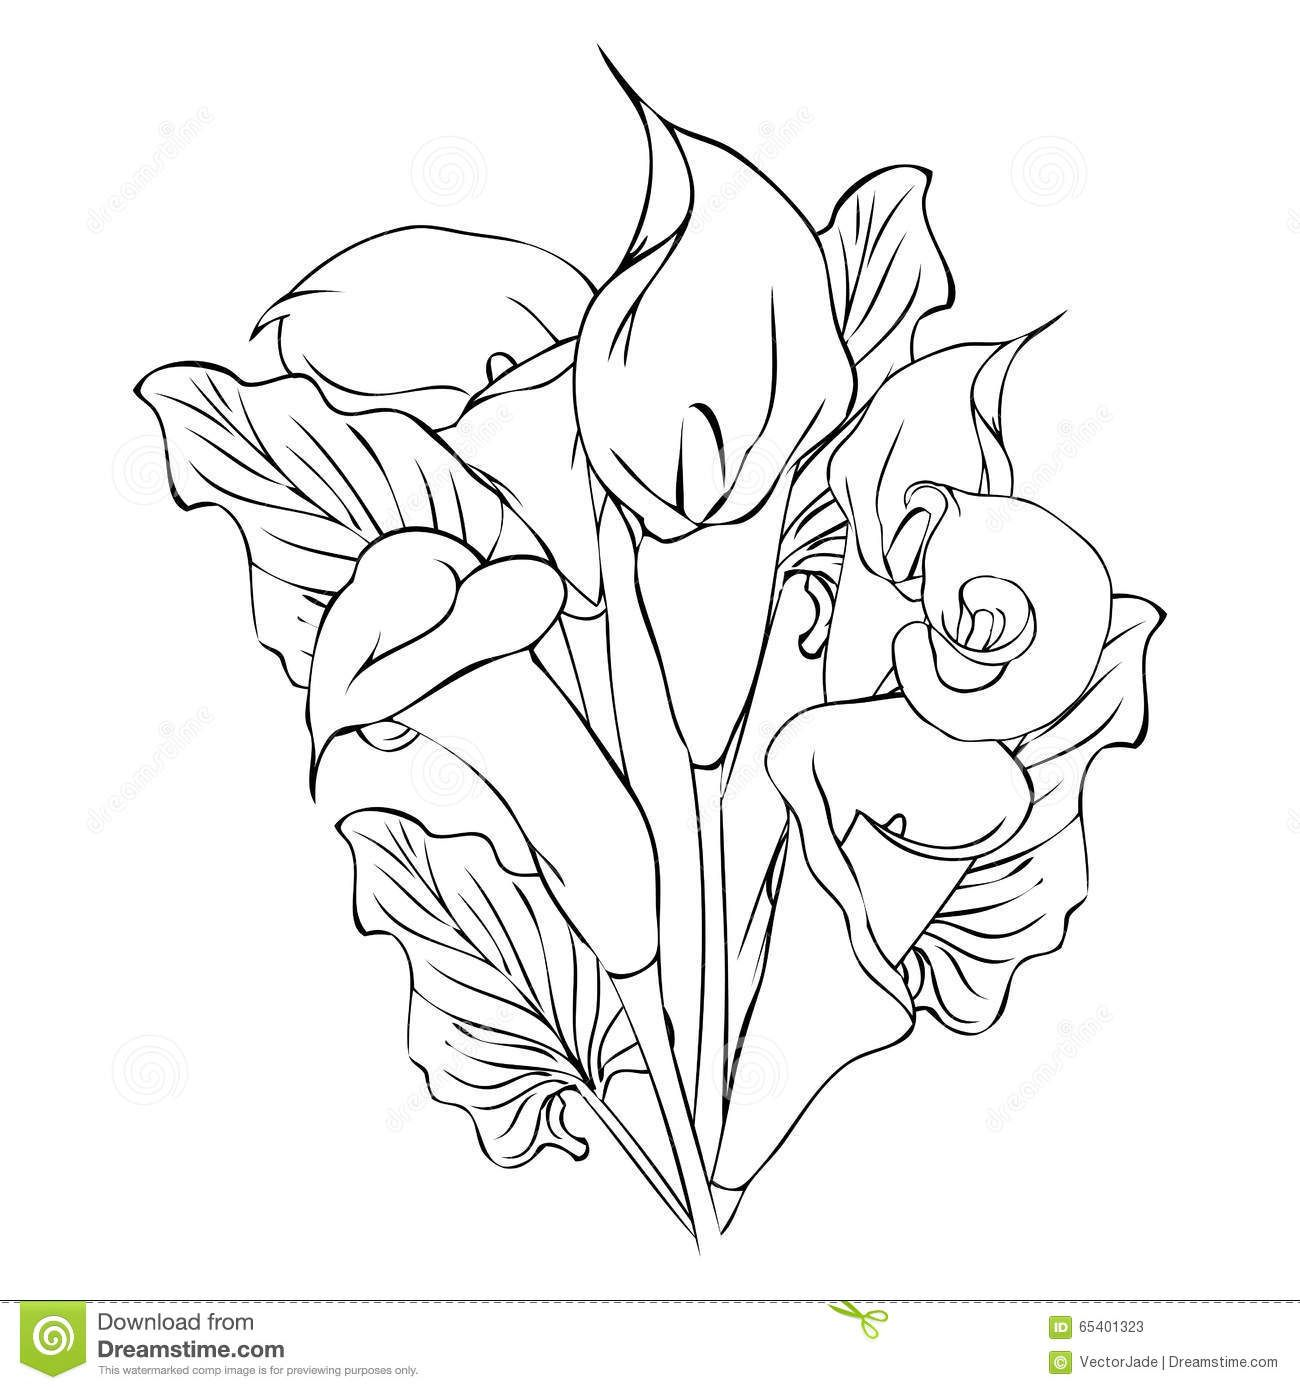 Calla Lily Flowers Outline Drawing Illustration Callas White Background 65401323 Jpg 1 300 1 390 Pixels Lilies Drawing Flower Drawing Flower Drawing Images